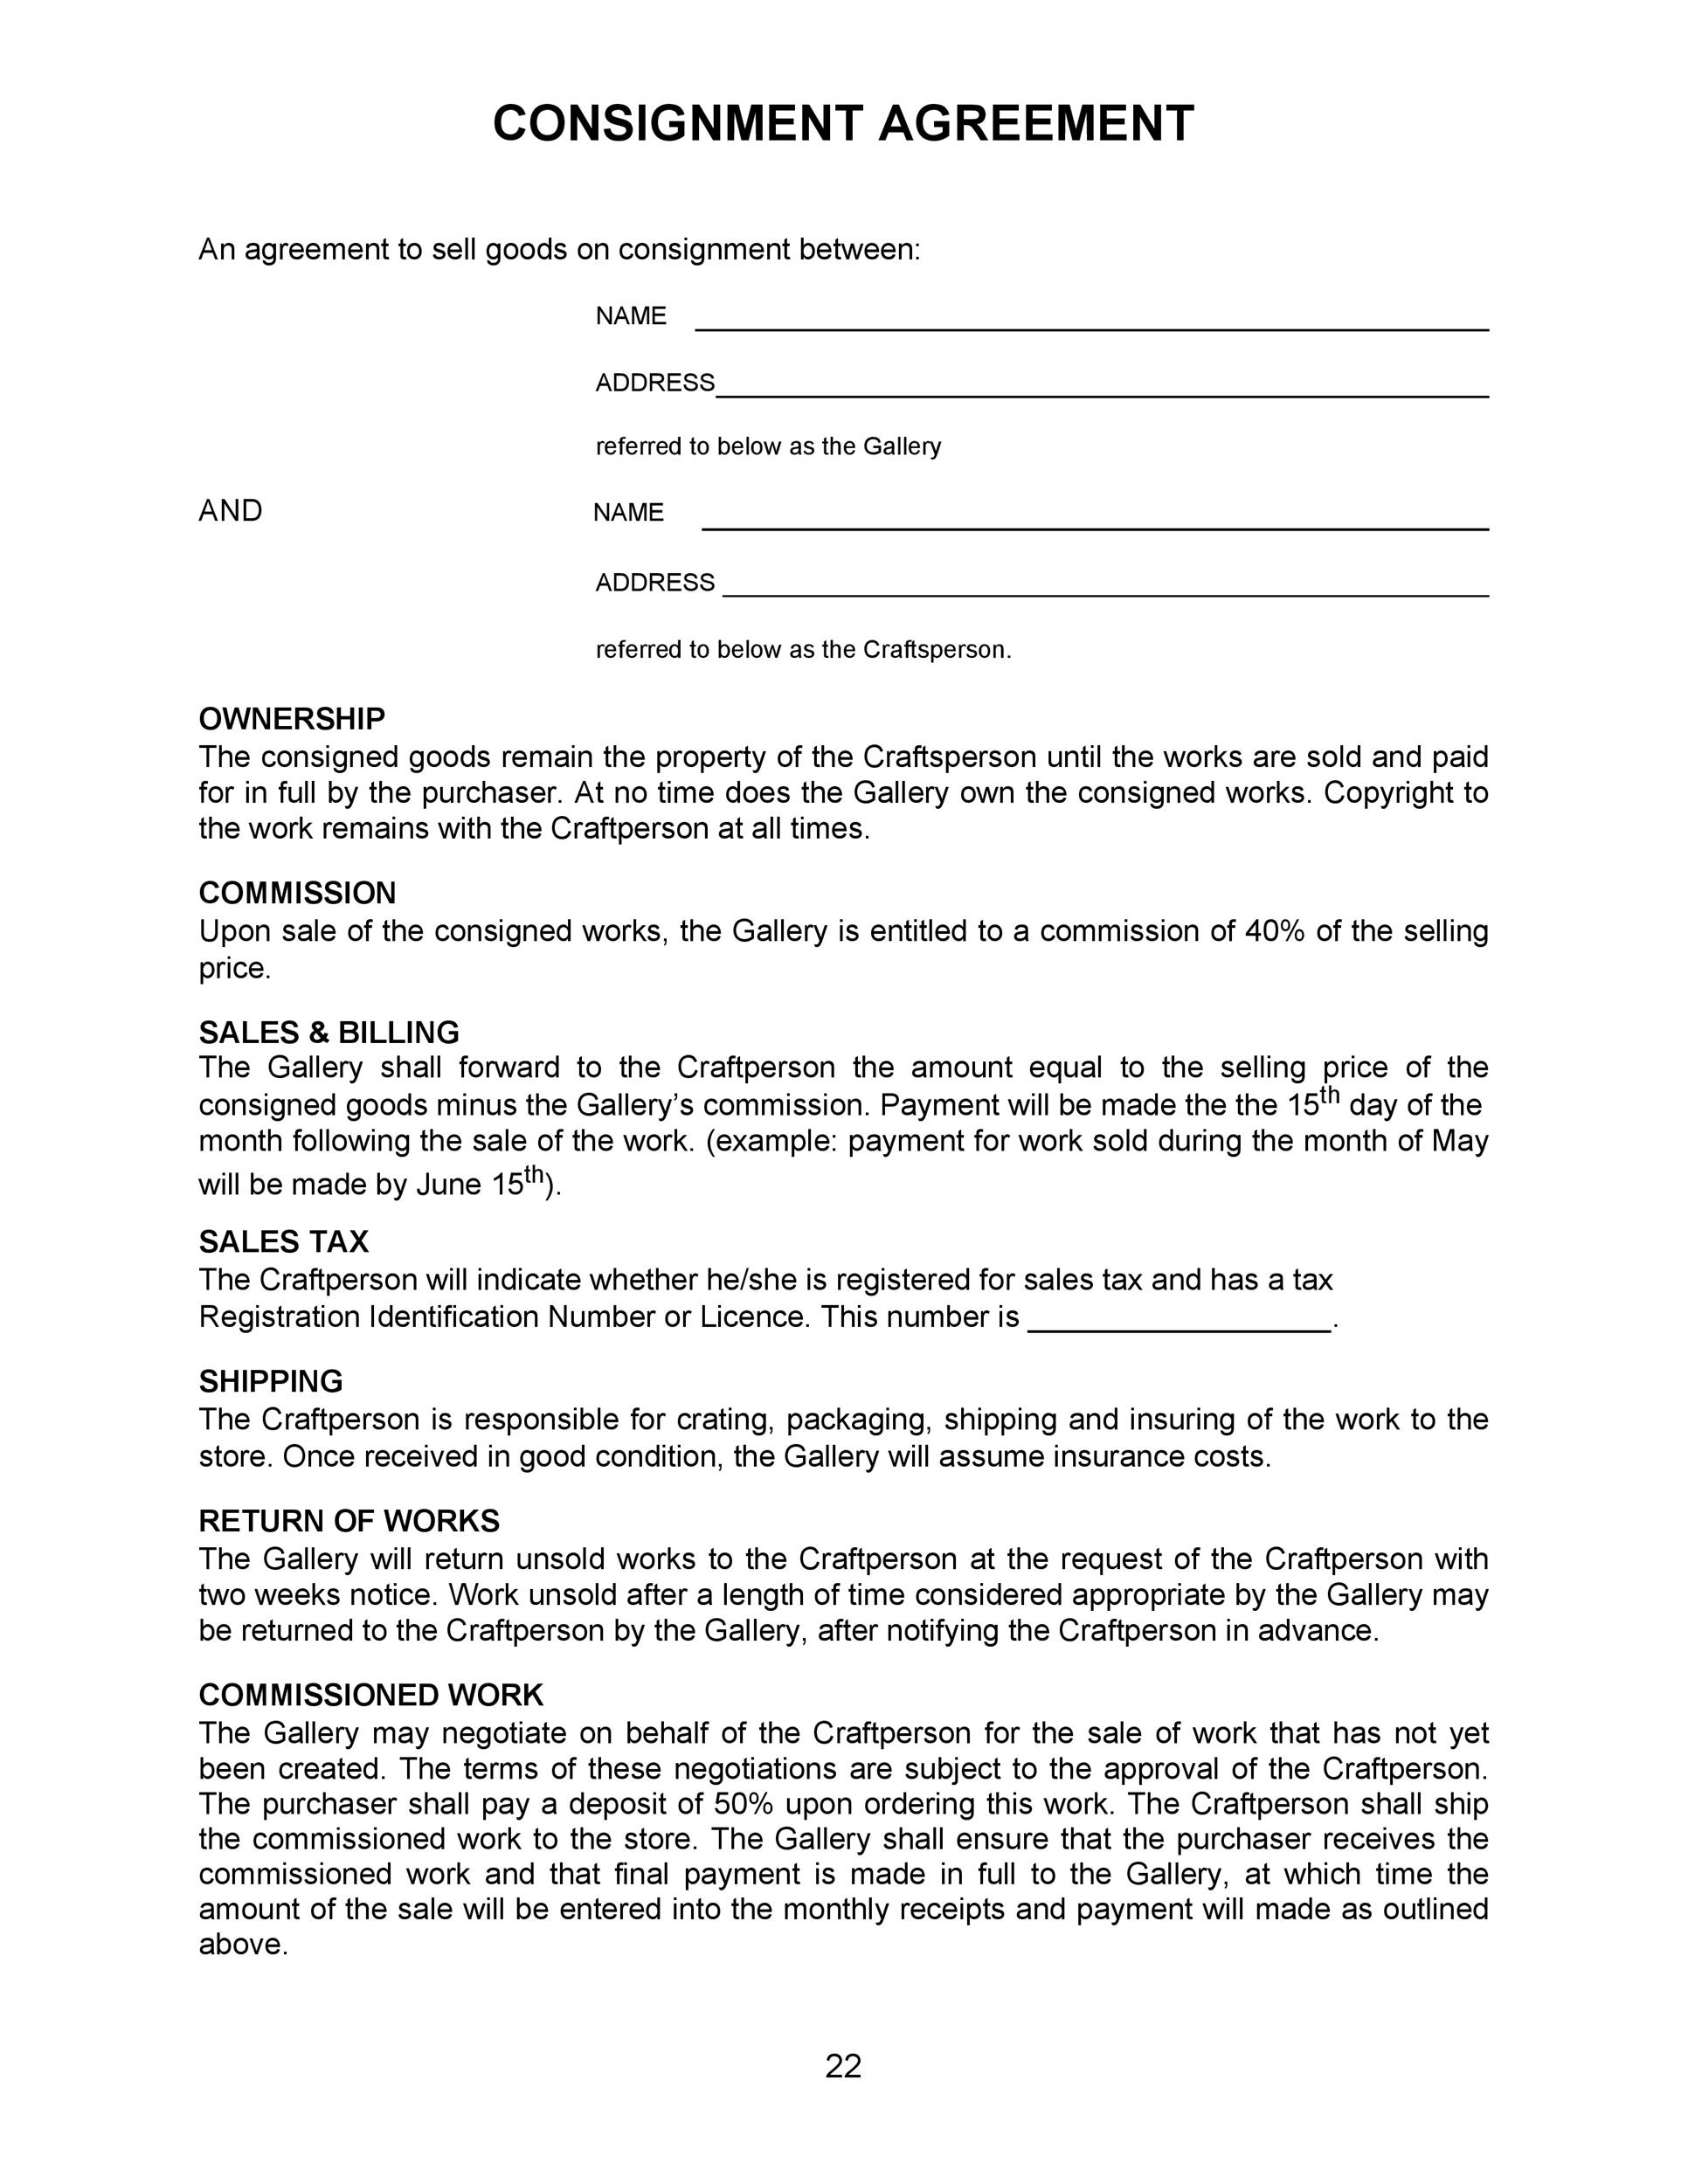 Free Consignment Agreement Template 42